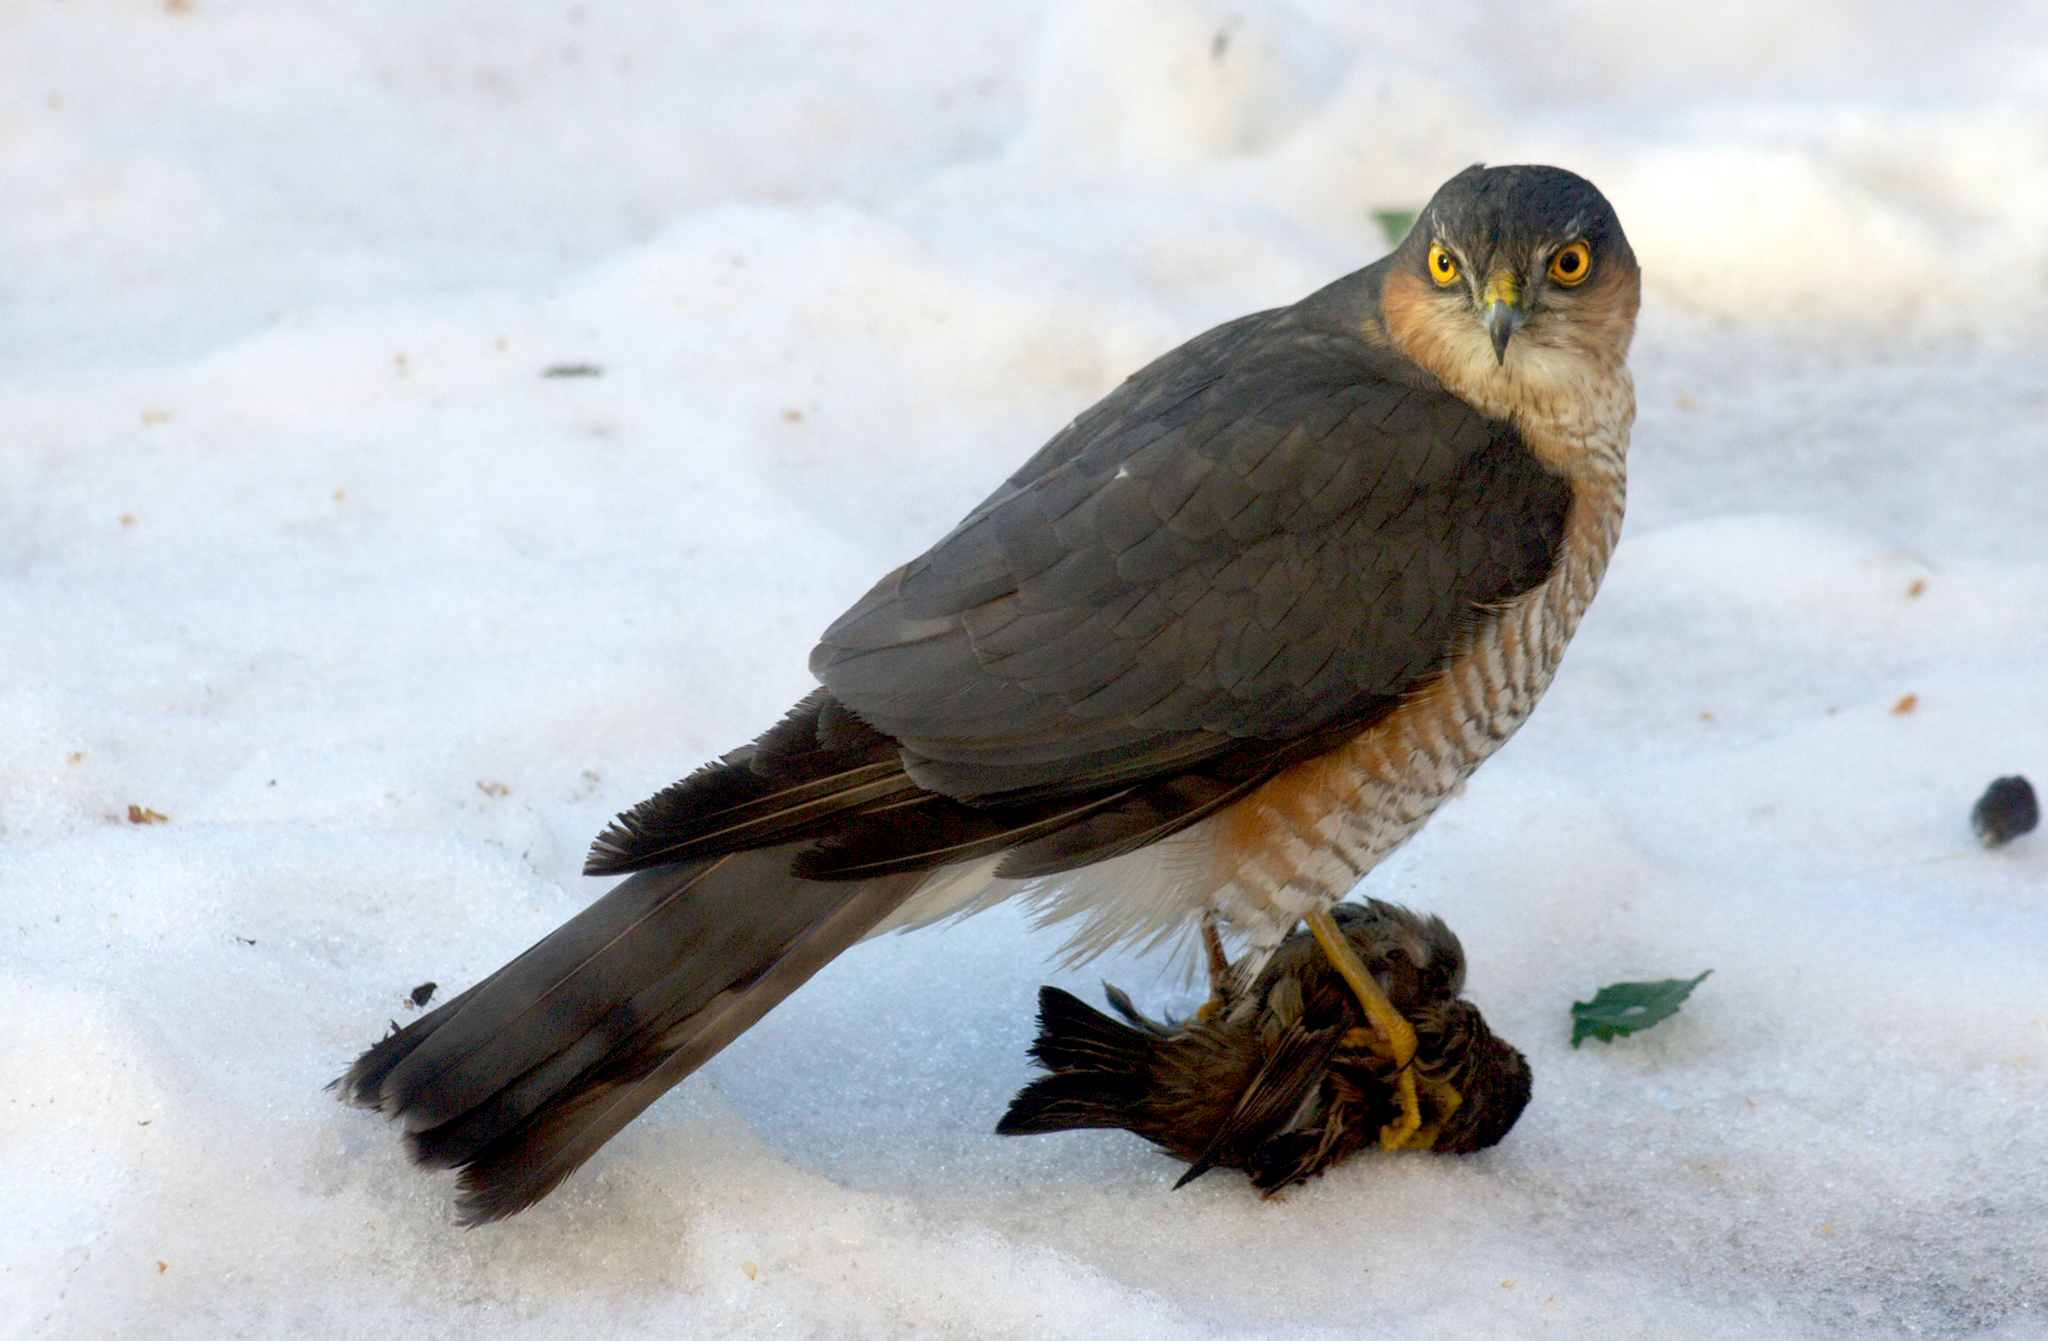 Male Sparrowhawk with a sparrow kill at its feet.